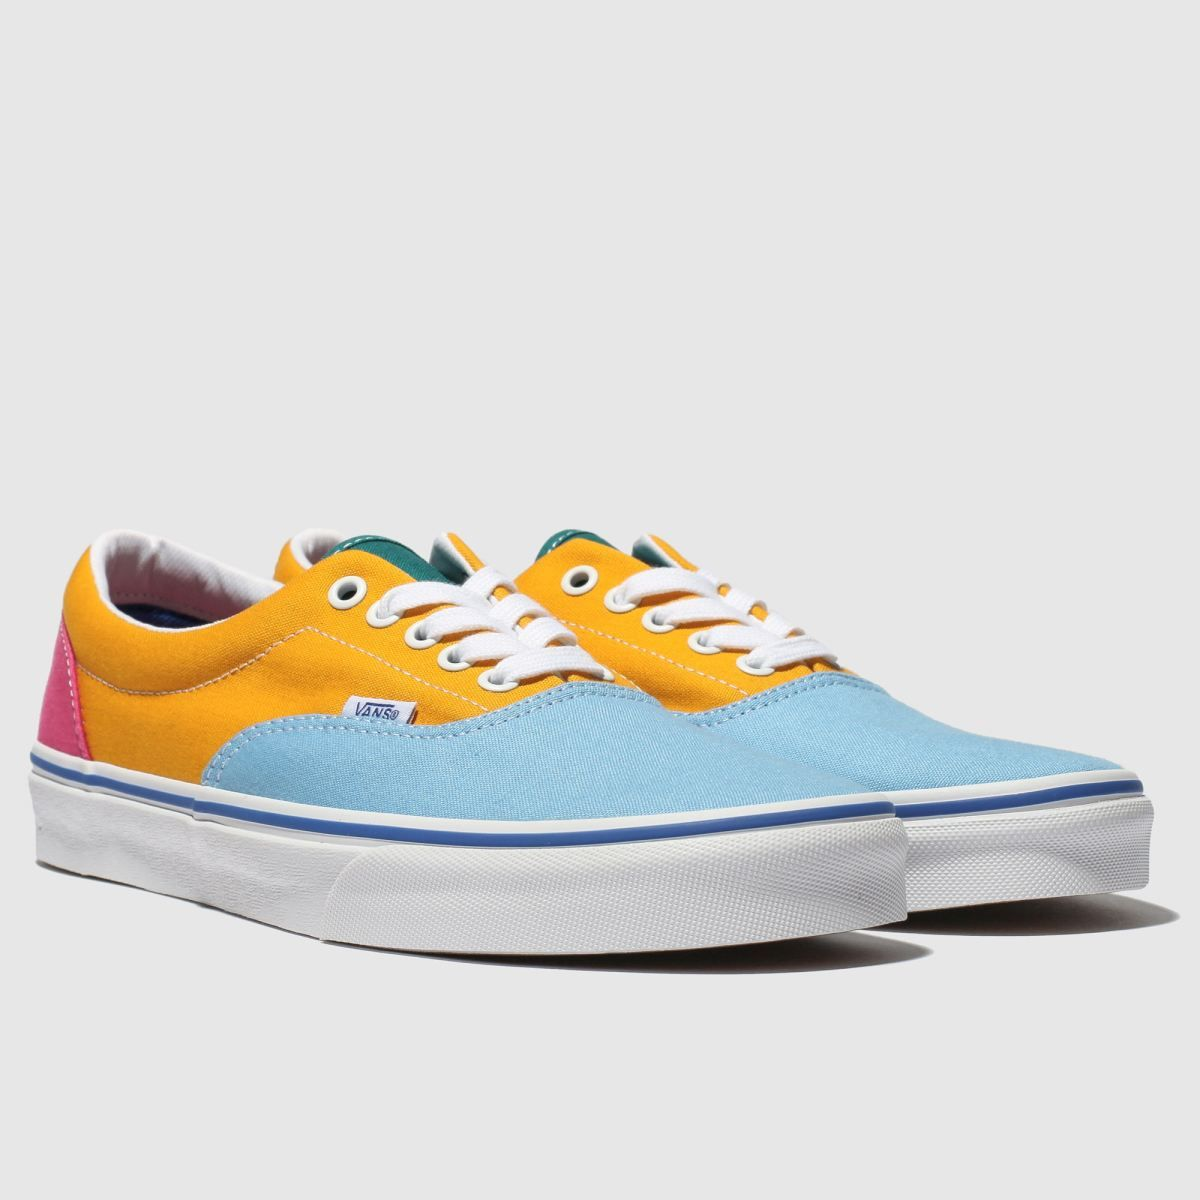 These yellow Old Skool Vans ought to brighten up your day